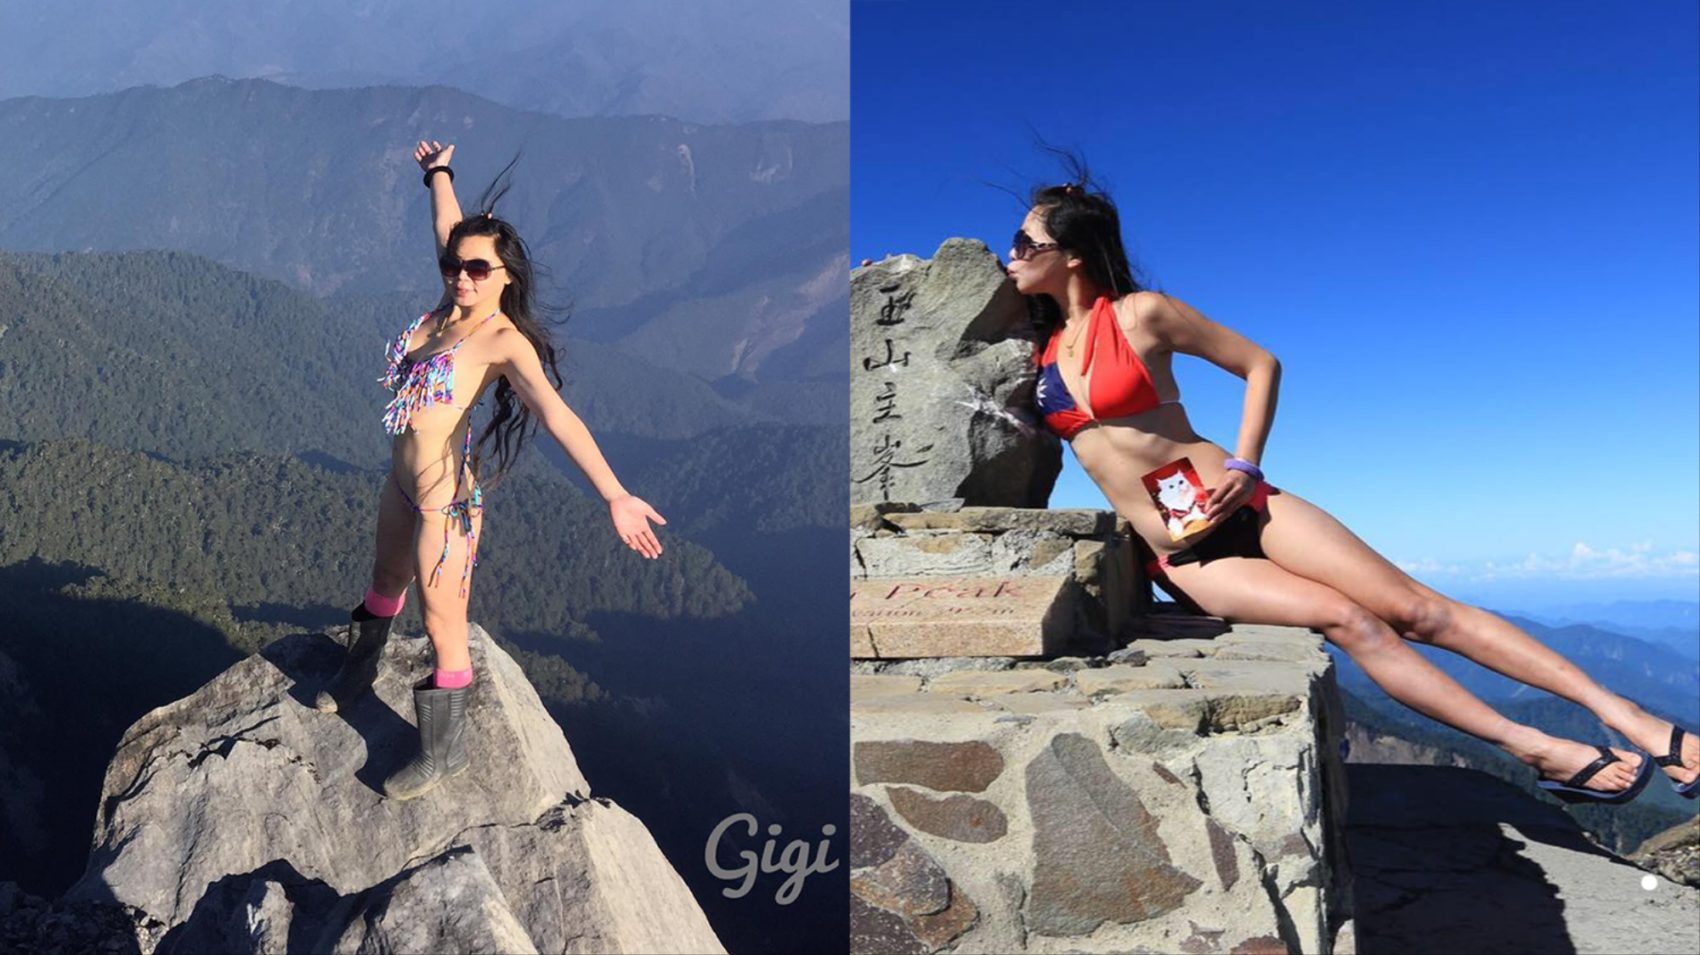 social media, fall death, bikini hiker, bikini